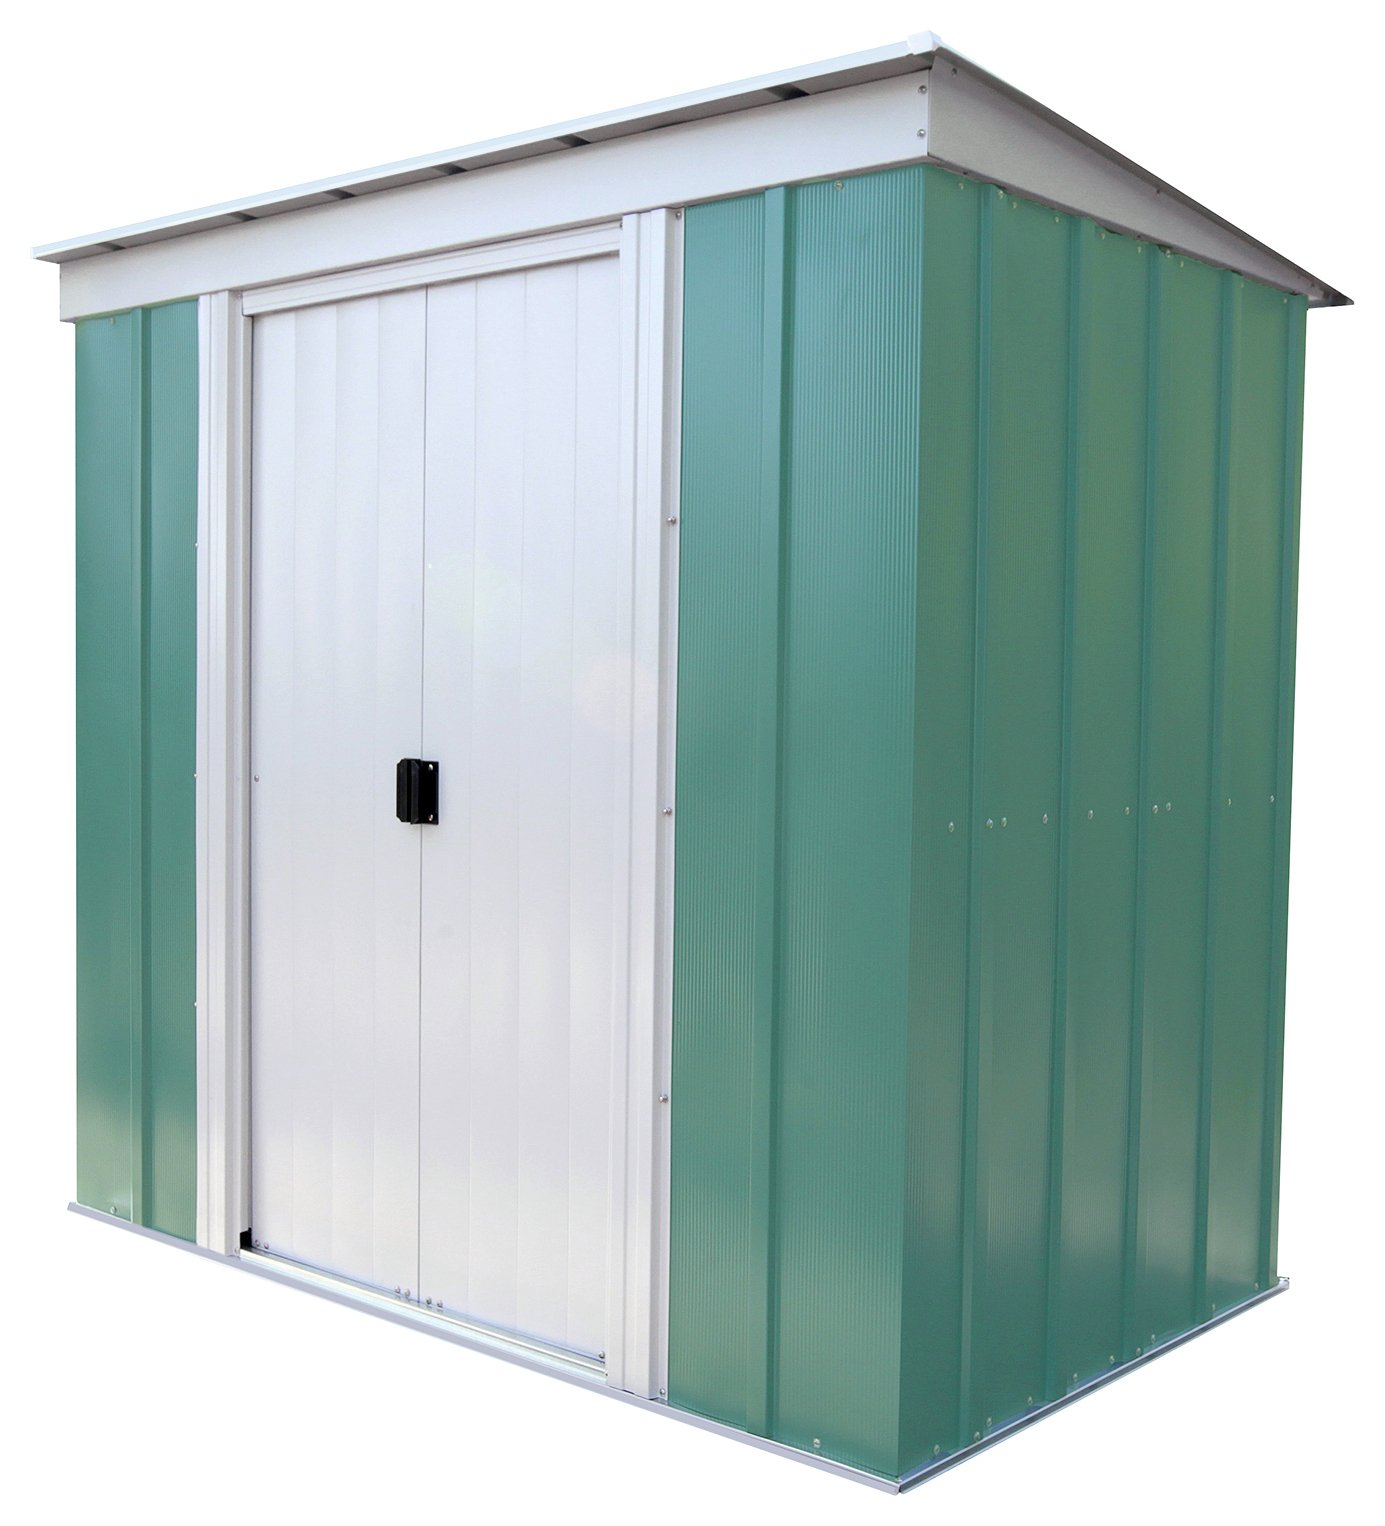 Garden Sheds Yeovil cheap sheds, sales and offers for the cheapest garden sheds from